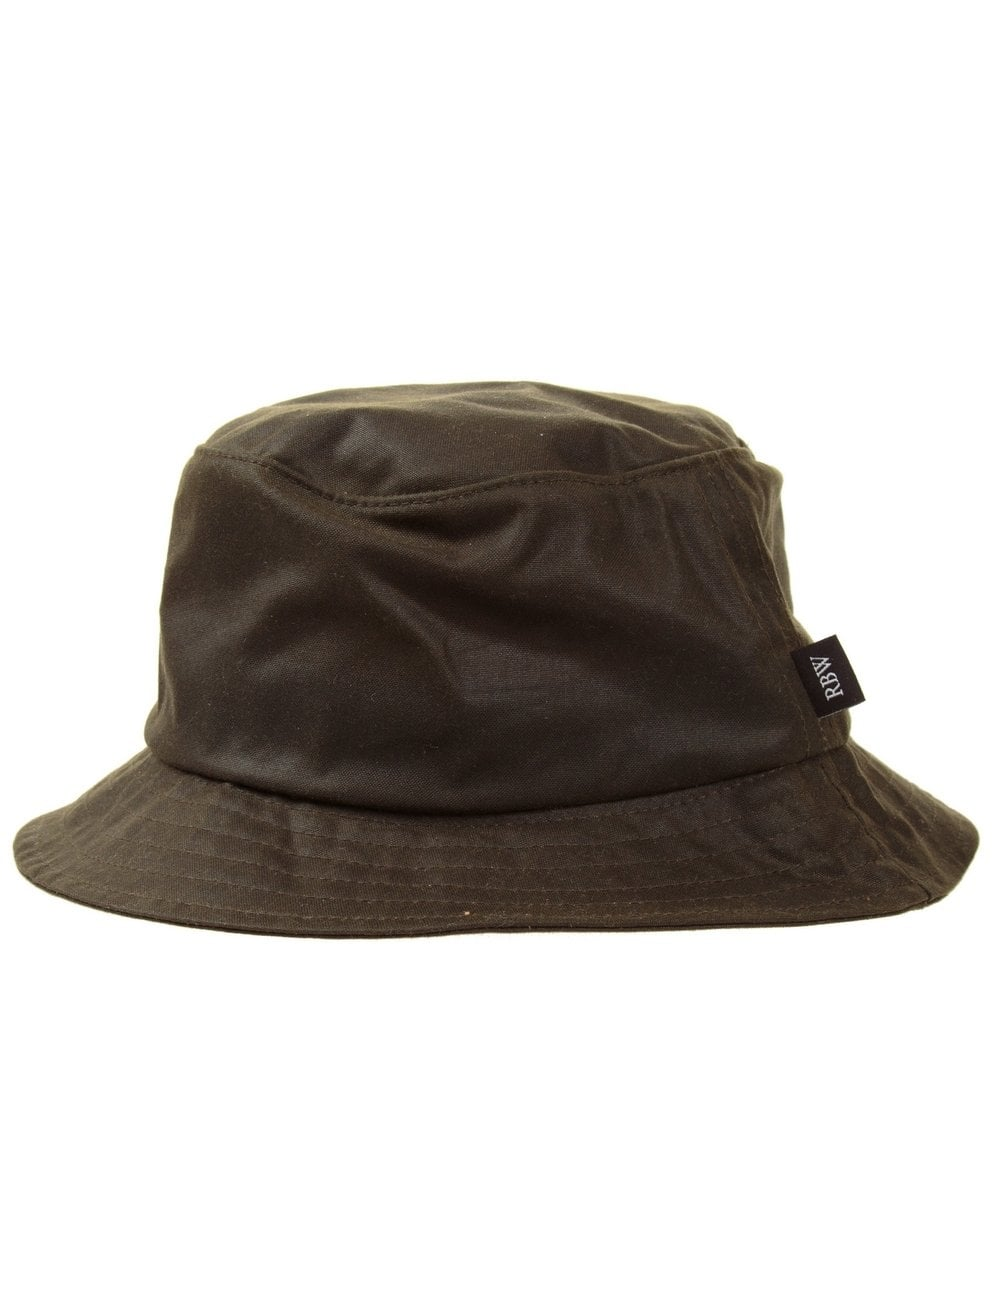 010f909380f Raised wolves gatineau bucket hat olive millerain accessories jpg 1000x1300 Wolves  hat